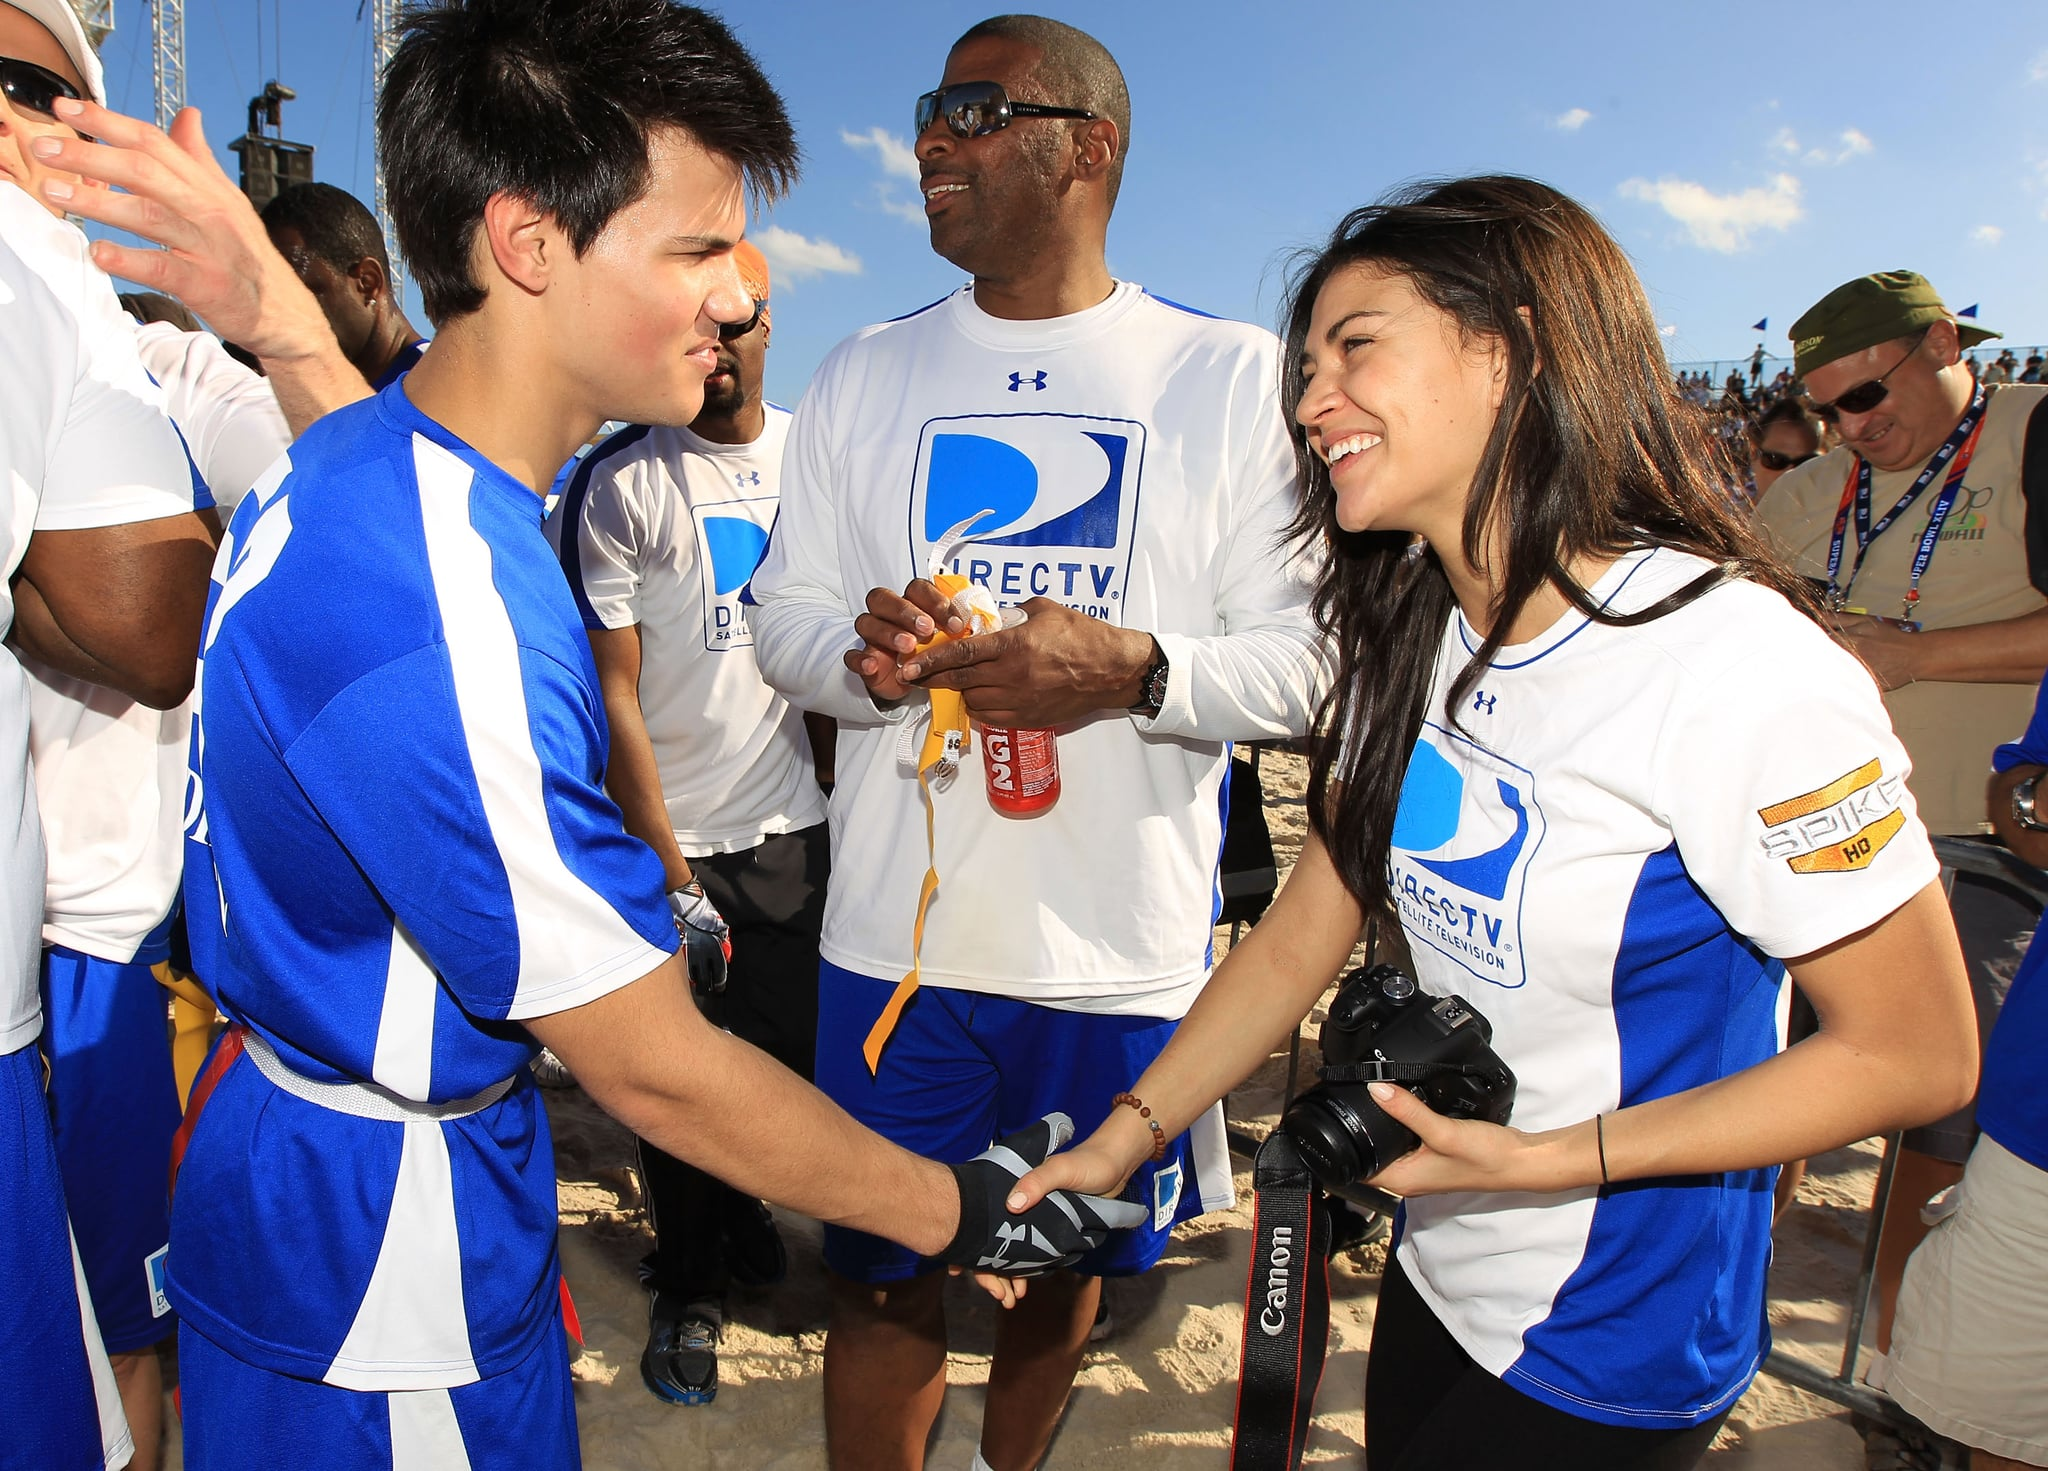 Taylor lautner at the celebrity beach bowl